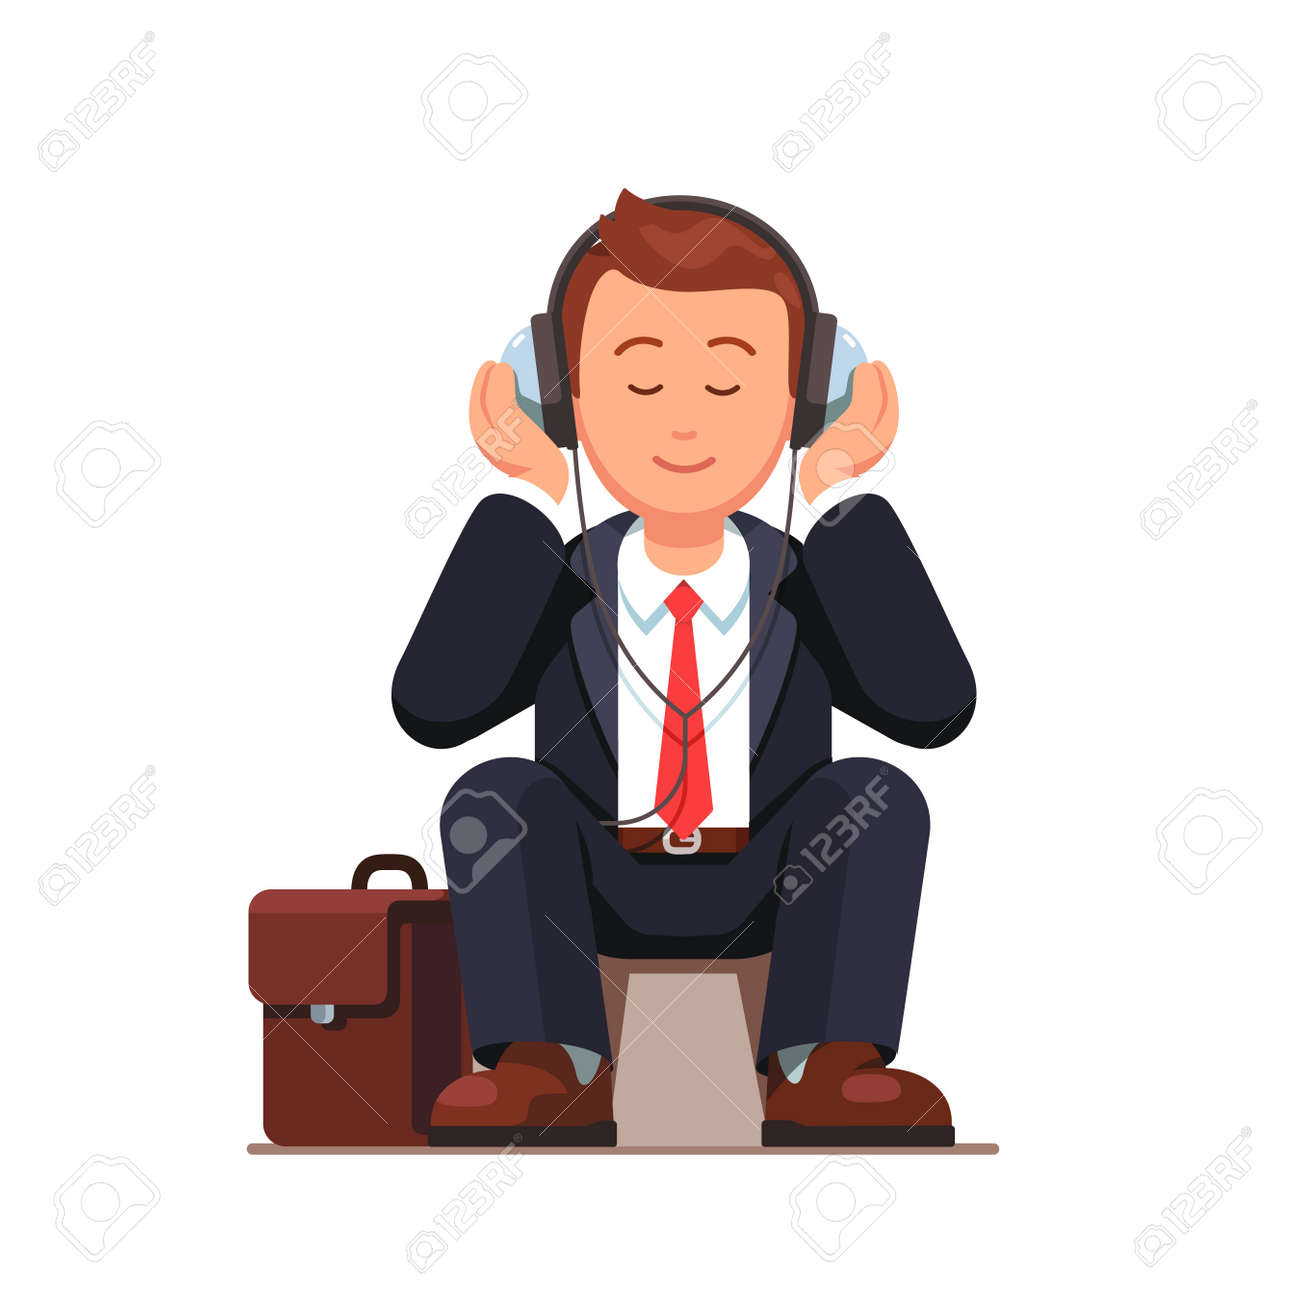 Business man listening to music wearing big headphones and sitting near his briefcase. Flat style vector illustration isolated on white background. - 67658221